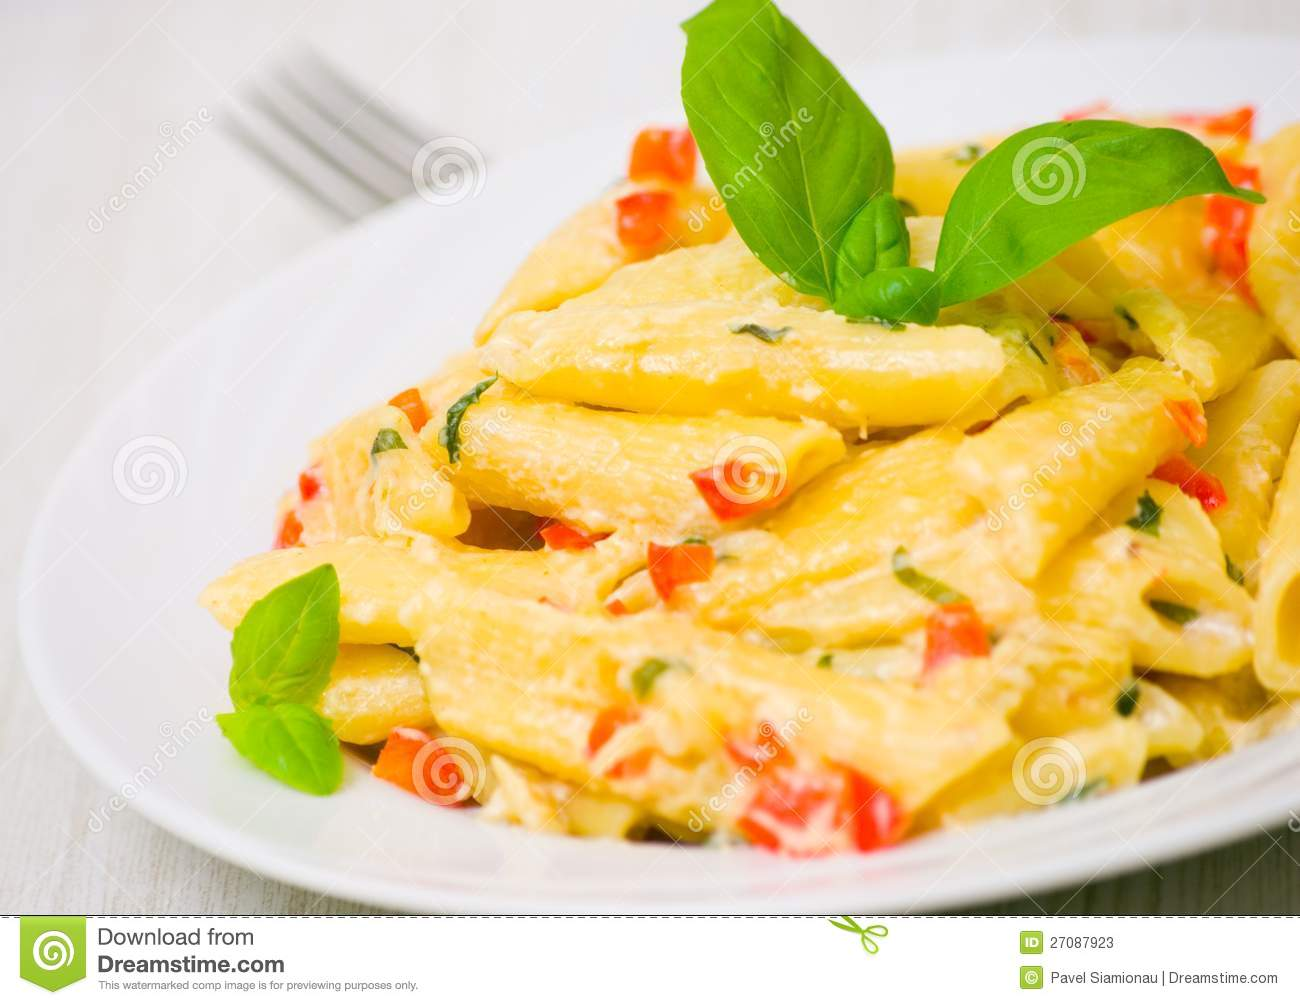 More similar stock images of ` Penne pasta with cream sauce `